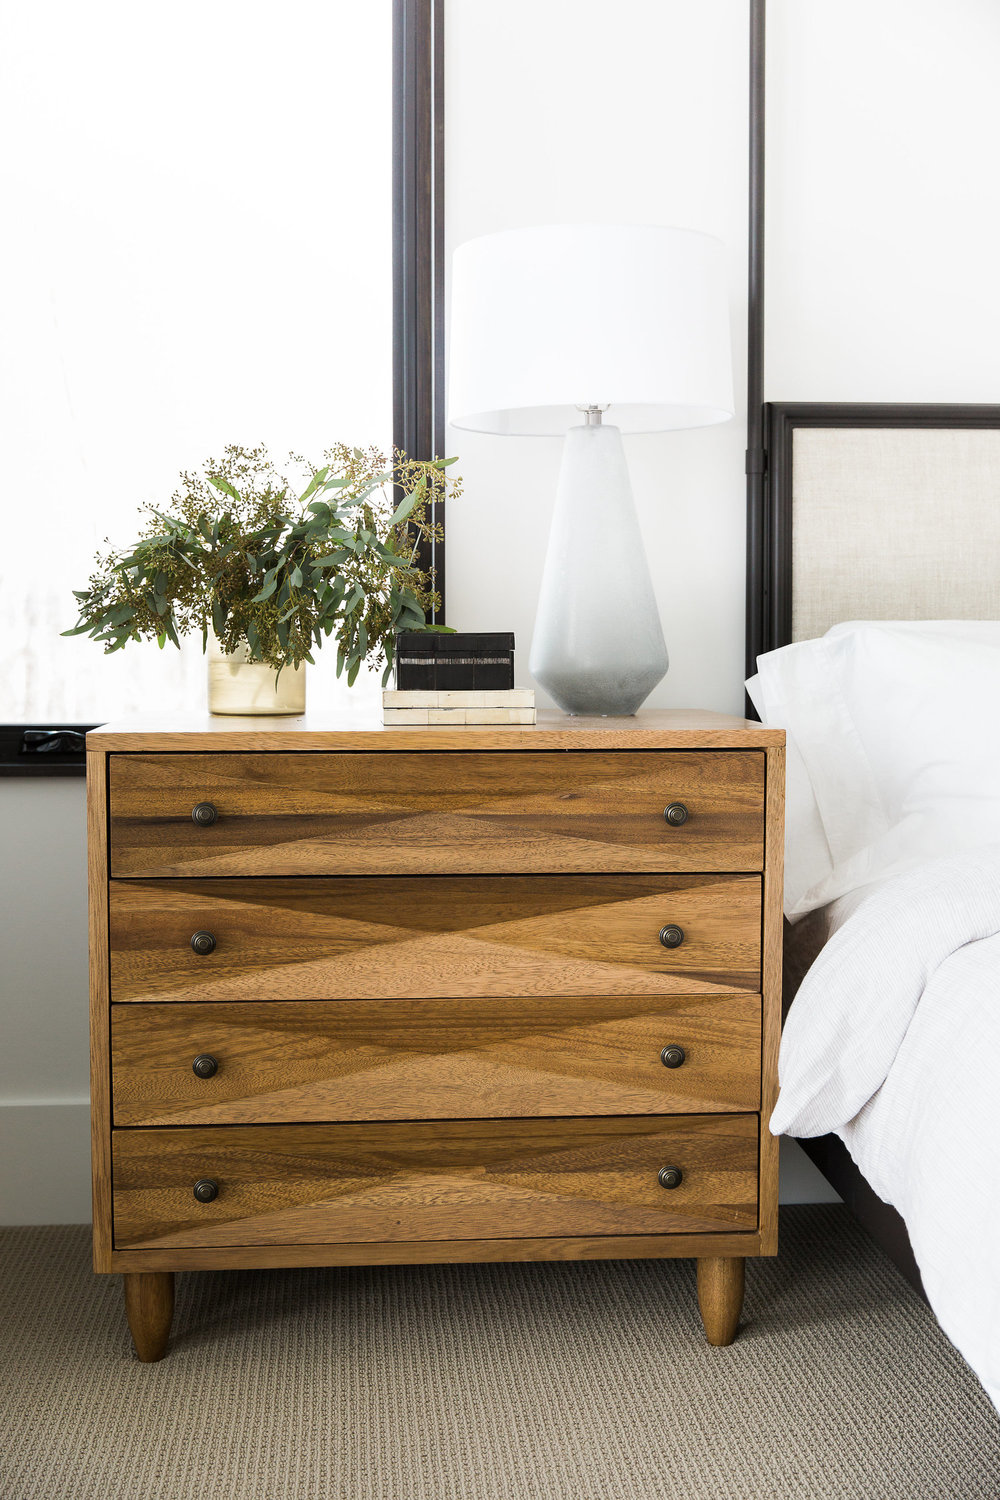 Details on wooden nightstand